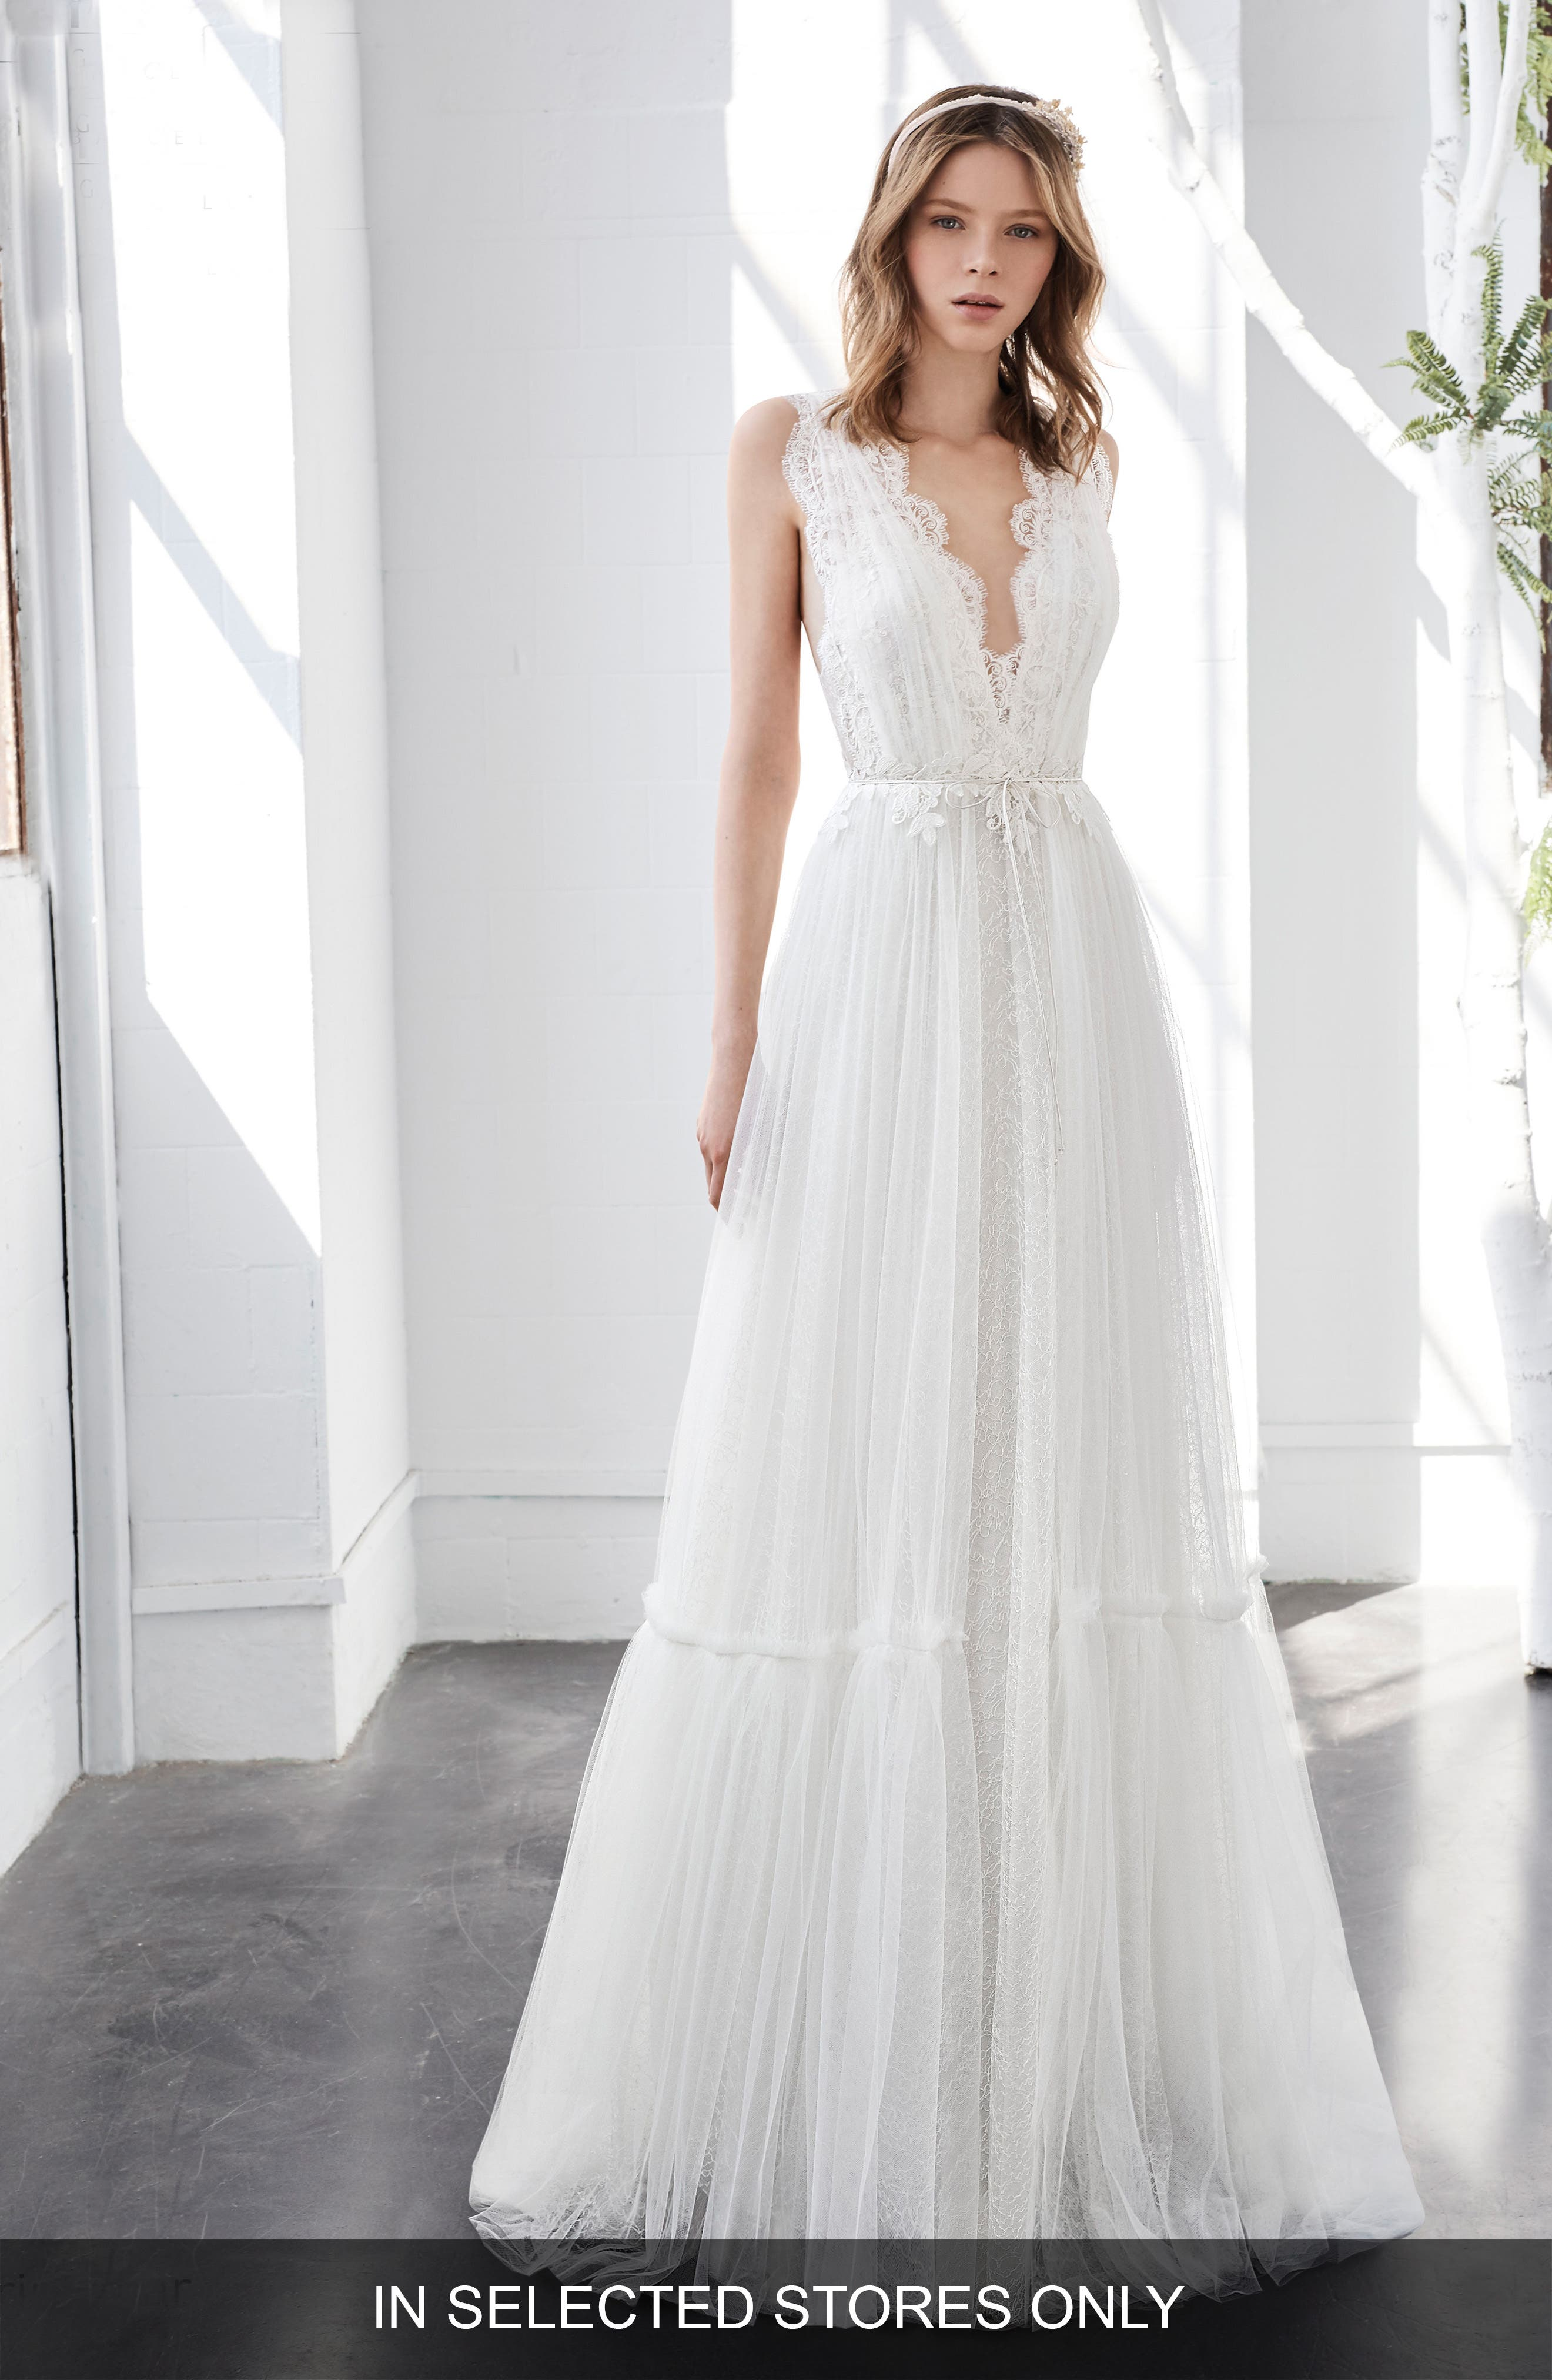 Inmaculada García Larimar Lace & Tulle A-Line Gown